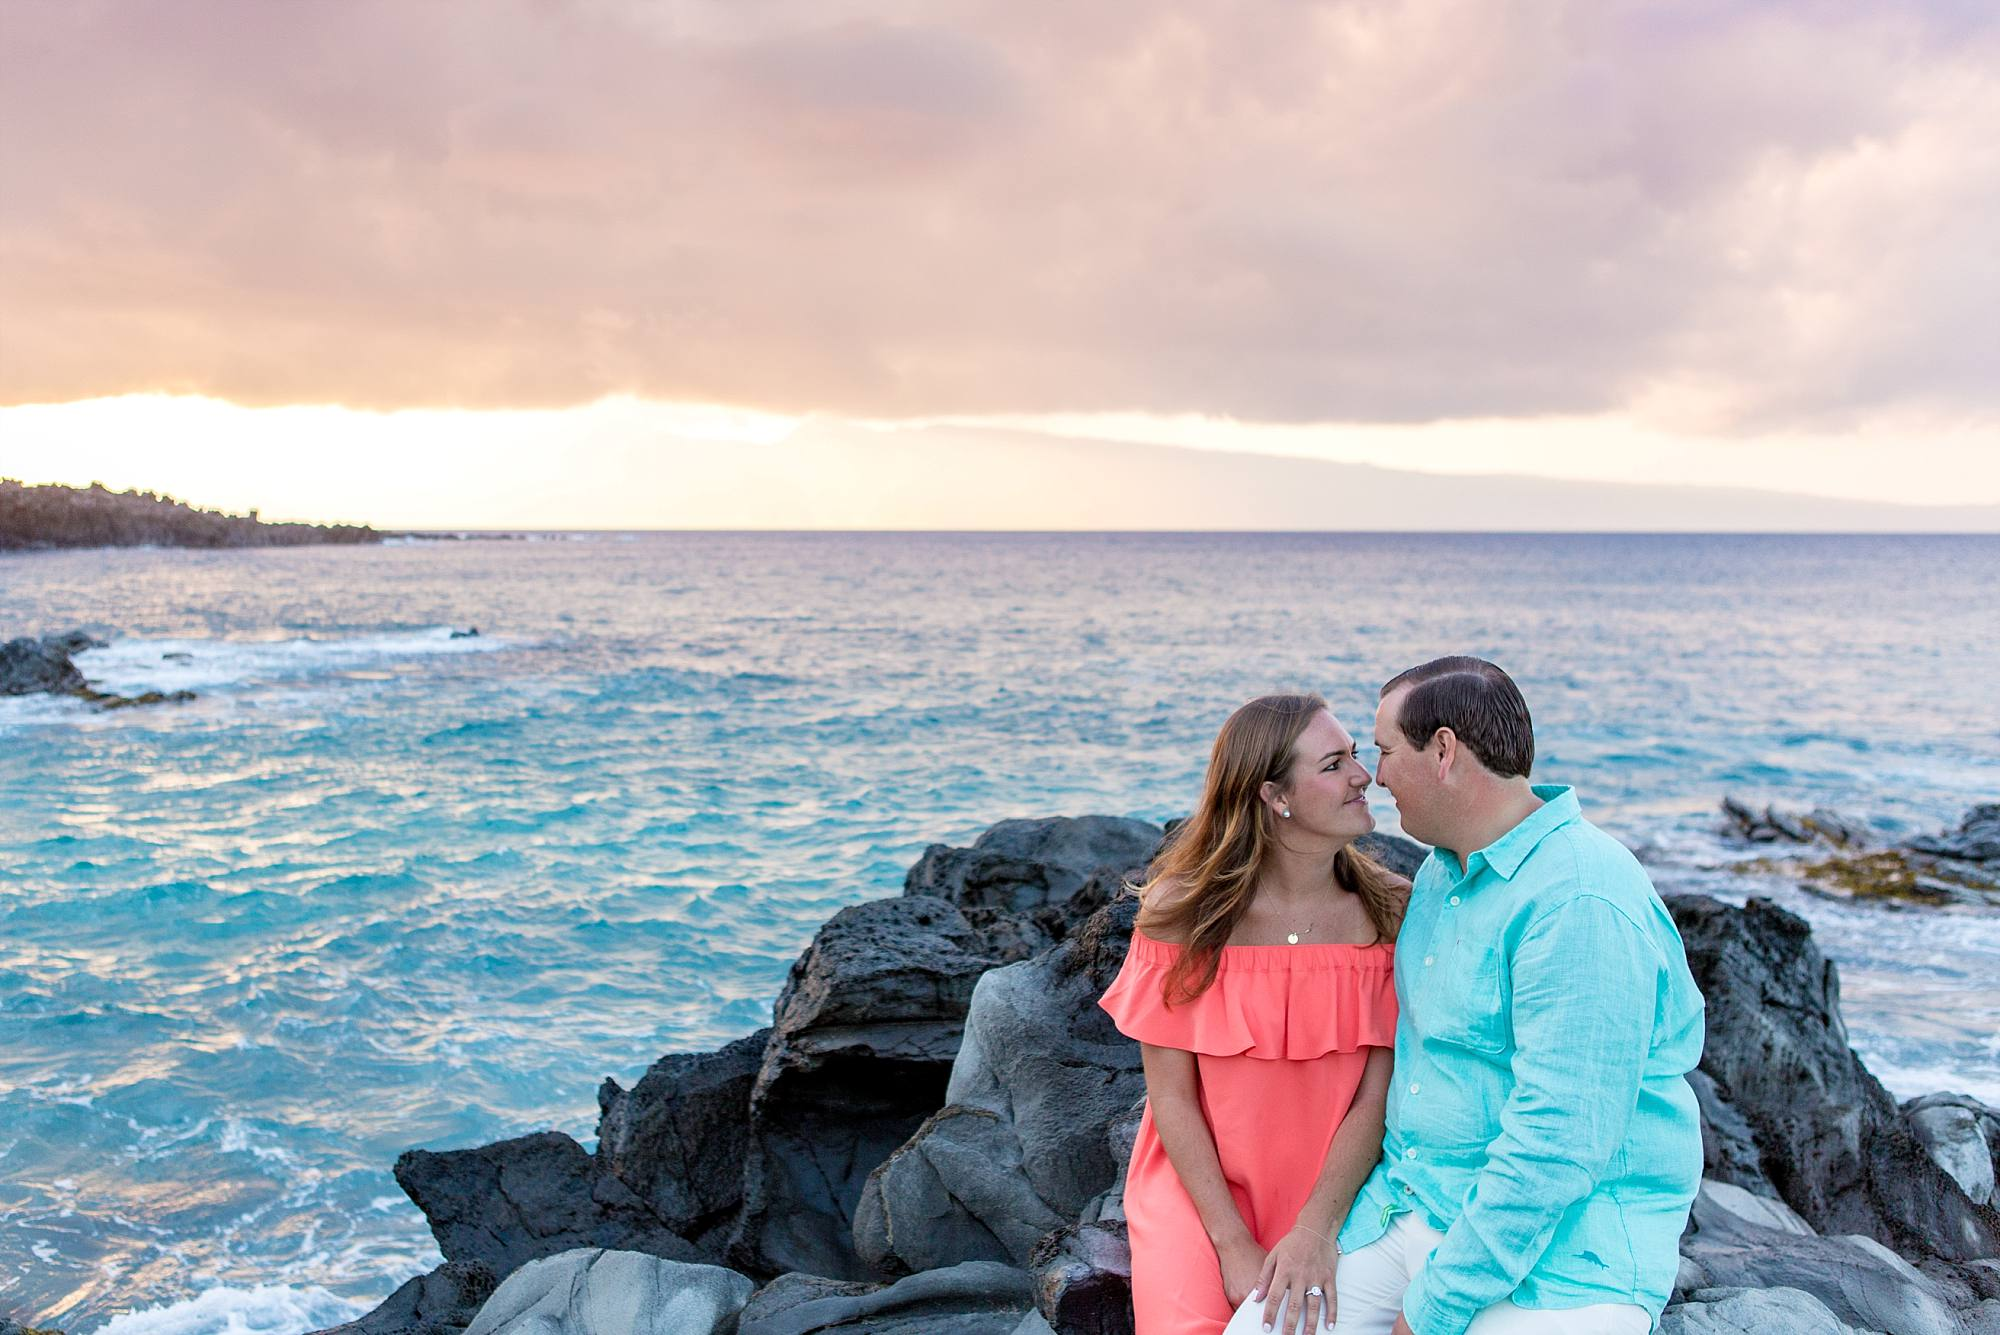 fiances gazing into each others eyes sitting on Maui lava rocks